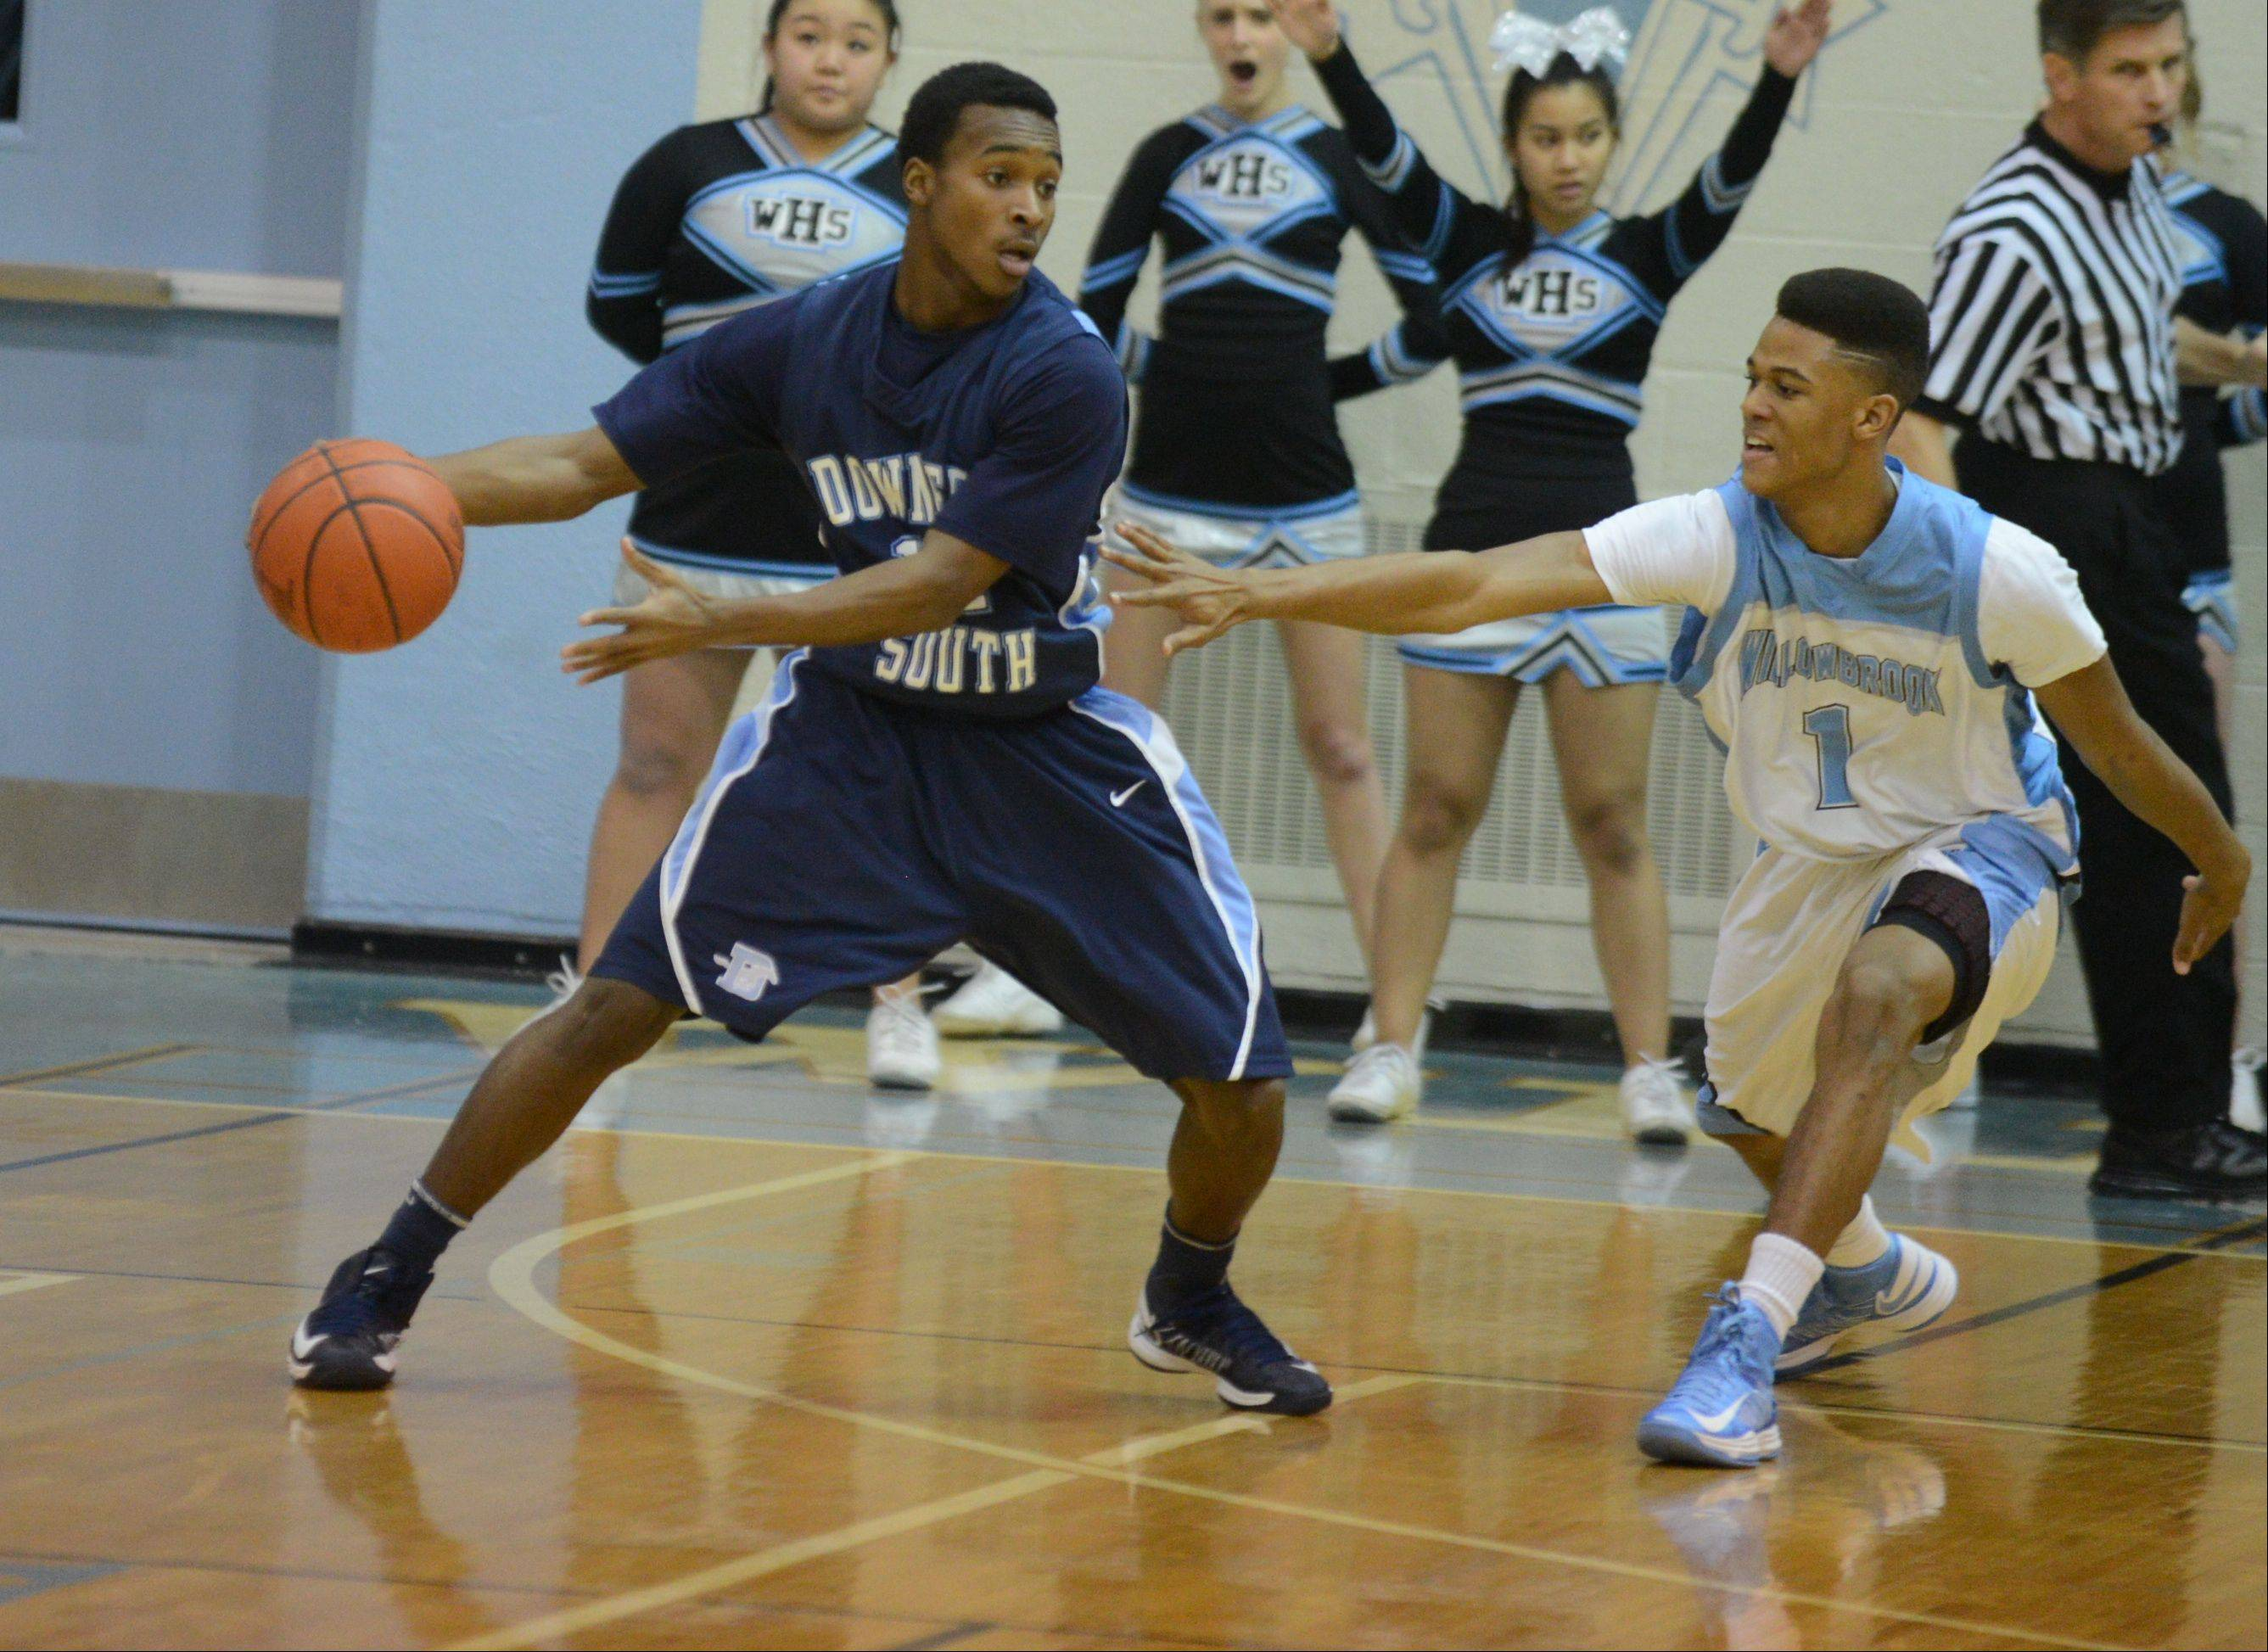 Images: Willowbrook vs. Downers Grove South, boys basketball